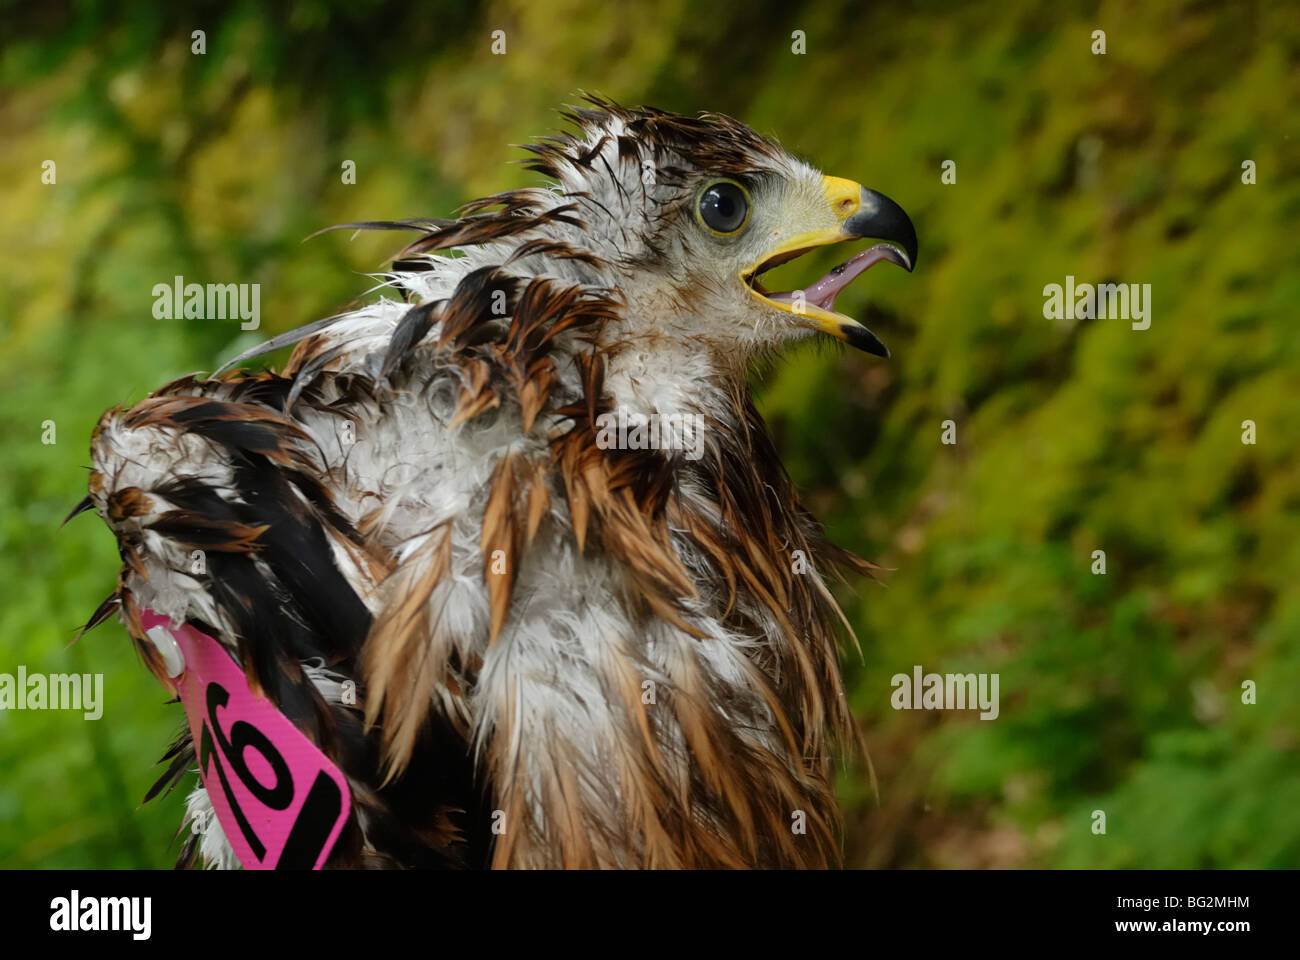 Tagged and bedraggled Red Kite, Milvus milvus nestling before it's return to the nest in a wet Welsh woodland Stock Photo